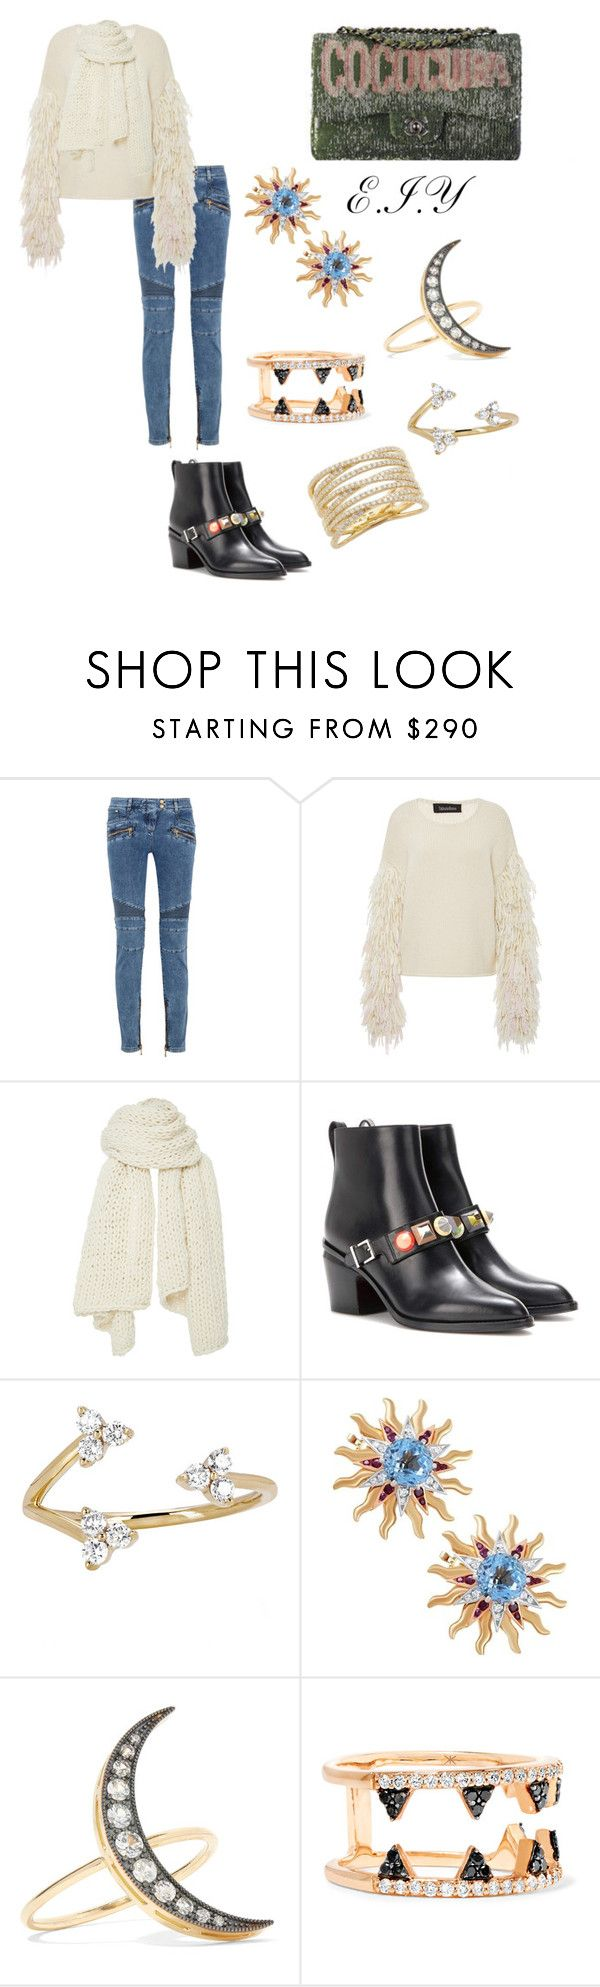 """Untitled #393"" by valentinazsecret21 ❤ liked on Polyvore featuring Chanel, Balmain, Tabula Rasa, I Love Mr. Mittens, Fendi, EF Collection, Cartier, Andrea Fohrman, Khai Khai and Bony Levy"